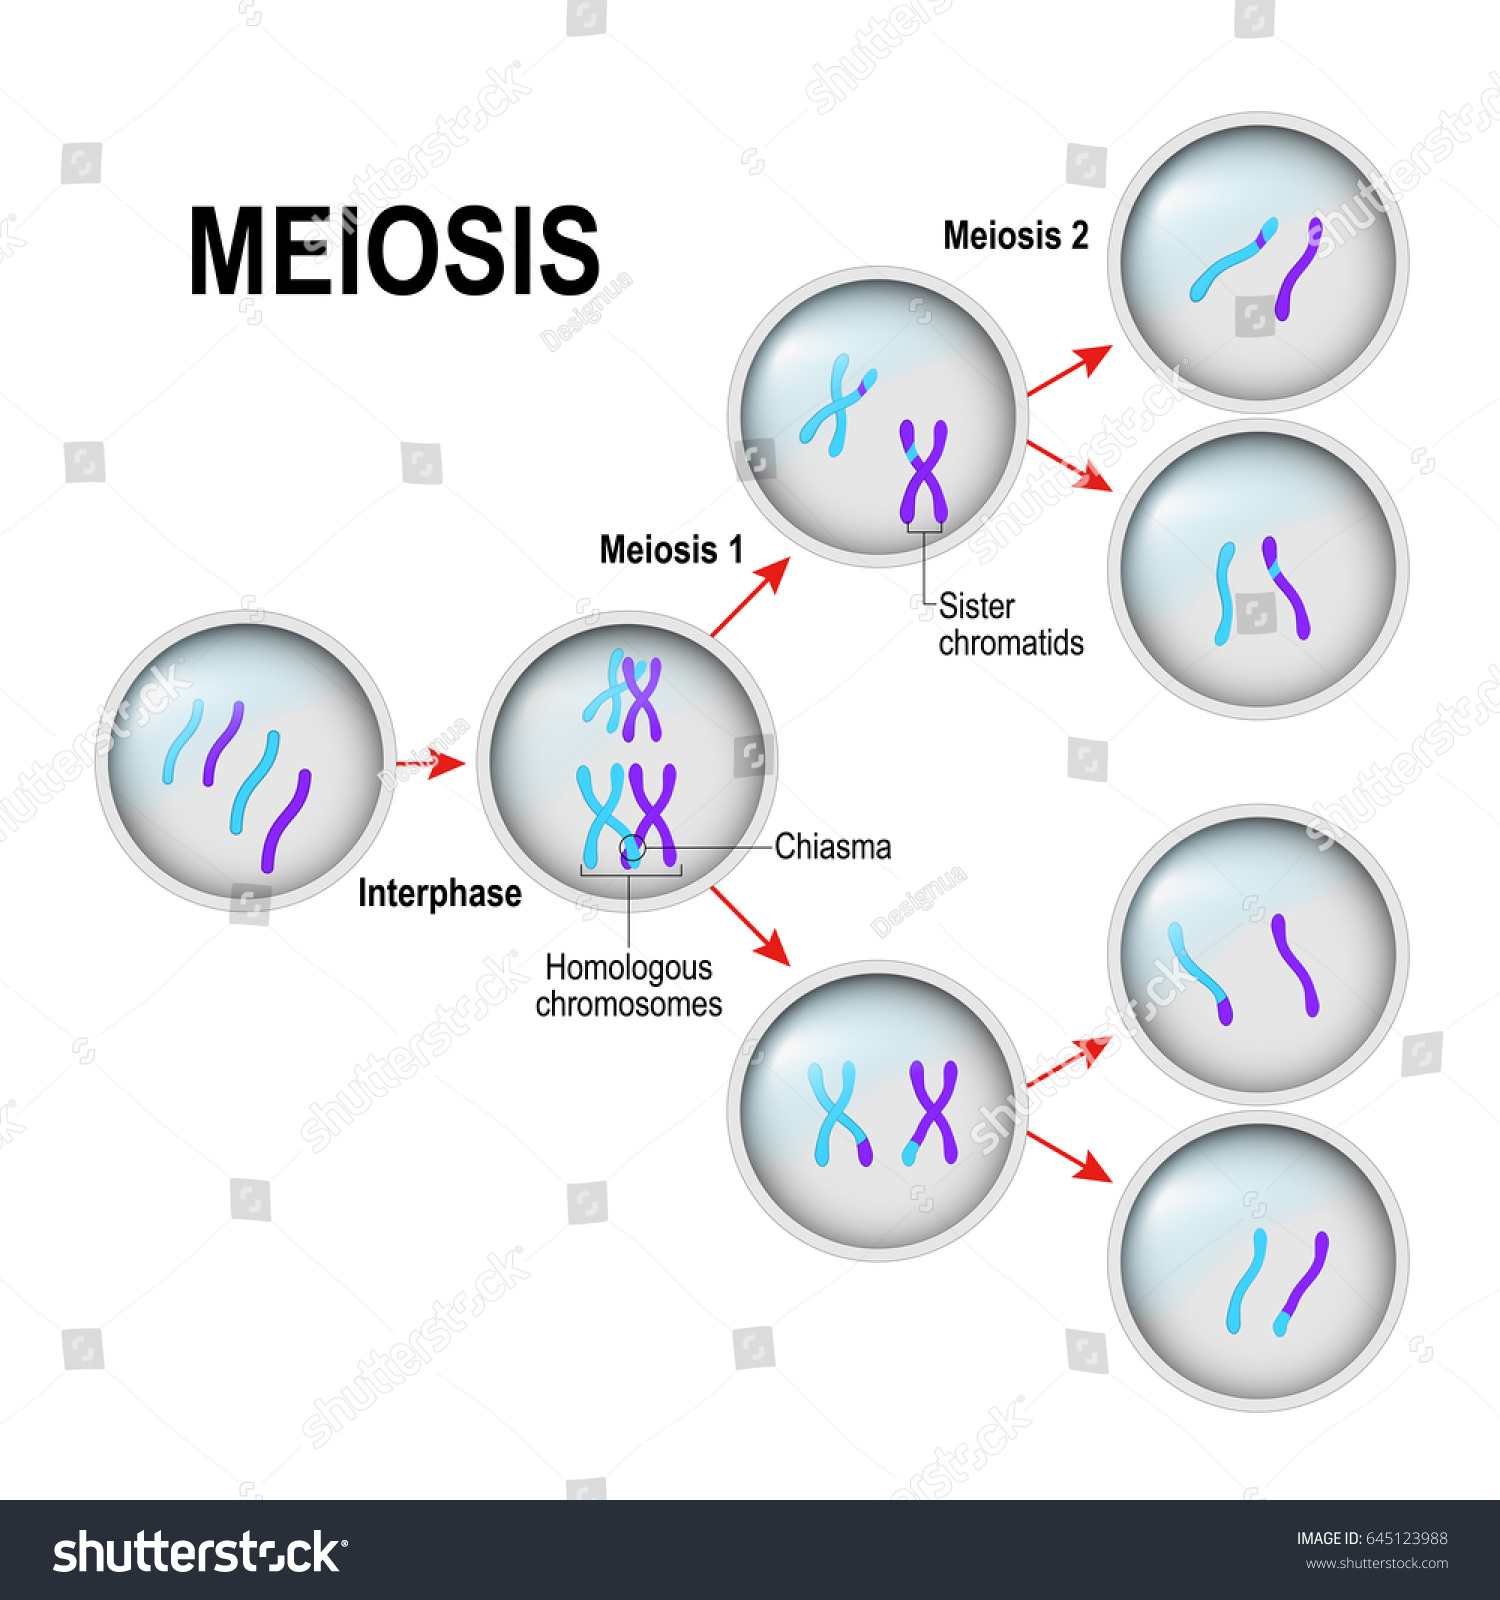 stages of mitosis and meiosis diagrams squier p bass wiring diagram cell division interphase illustration labeled